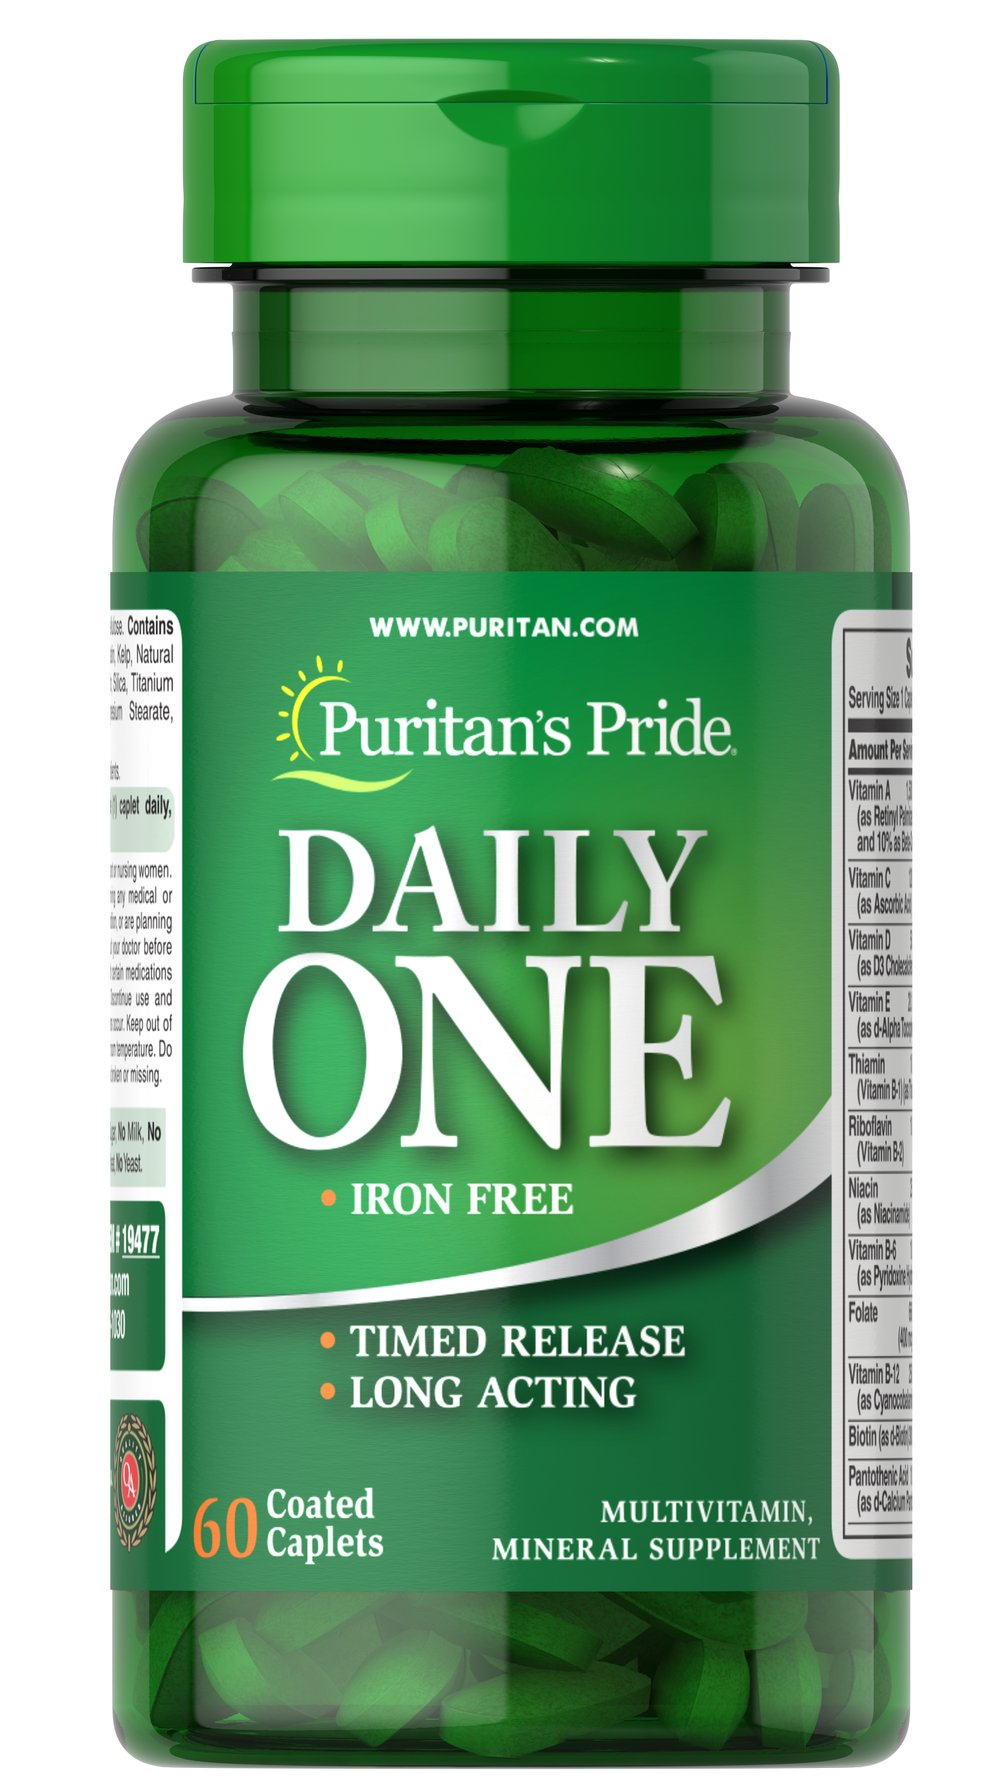 Iron Free Multivitamins Timed Release <p>Provides more than 20 vitamins and minerals for overall health and wellness**</p><p>Iron-Free formula is perfect for those looking to limit their intake of Iron</p><p>A super convenient dose of just one long-acting coated caplet a day</p><p>Our timed release formula supplies prolonged absorption of B-Complex and C vitamins for heart, immune and nervous system health**</p> 60 Caplets  $12.99